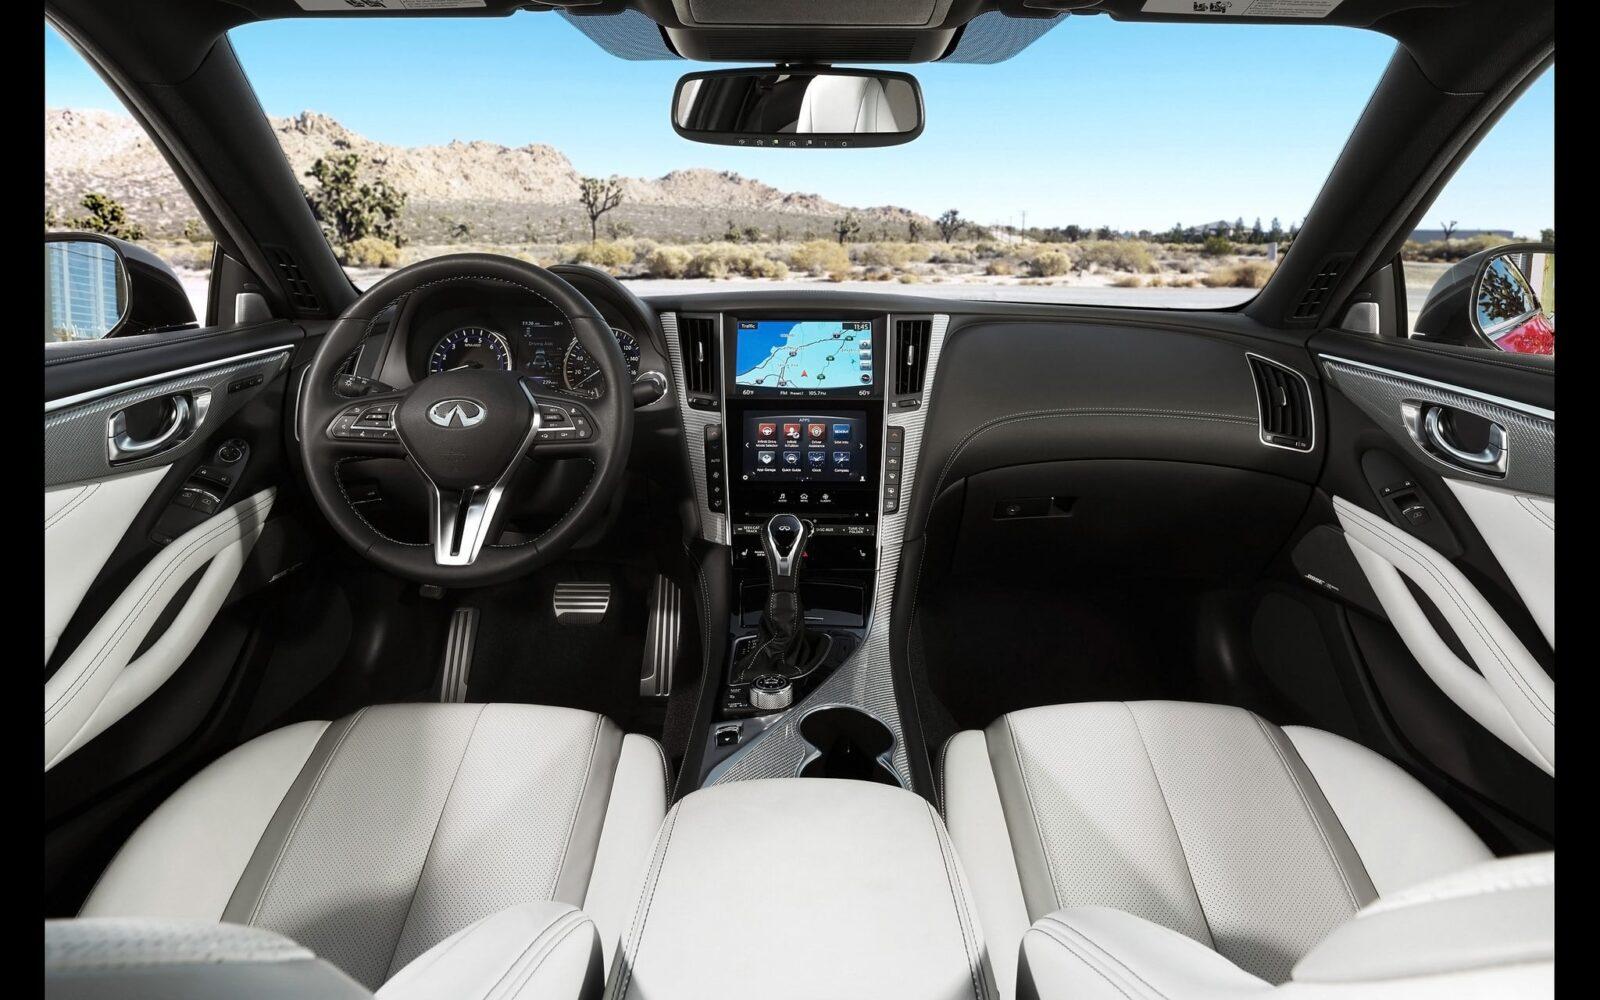 2017 Infiniti Q60s interior High Quality wallpapers